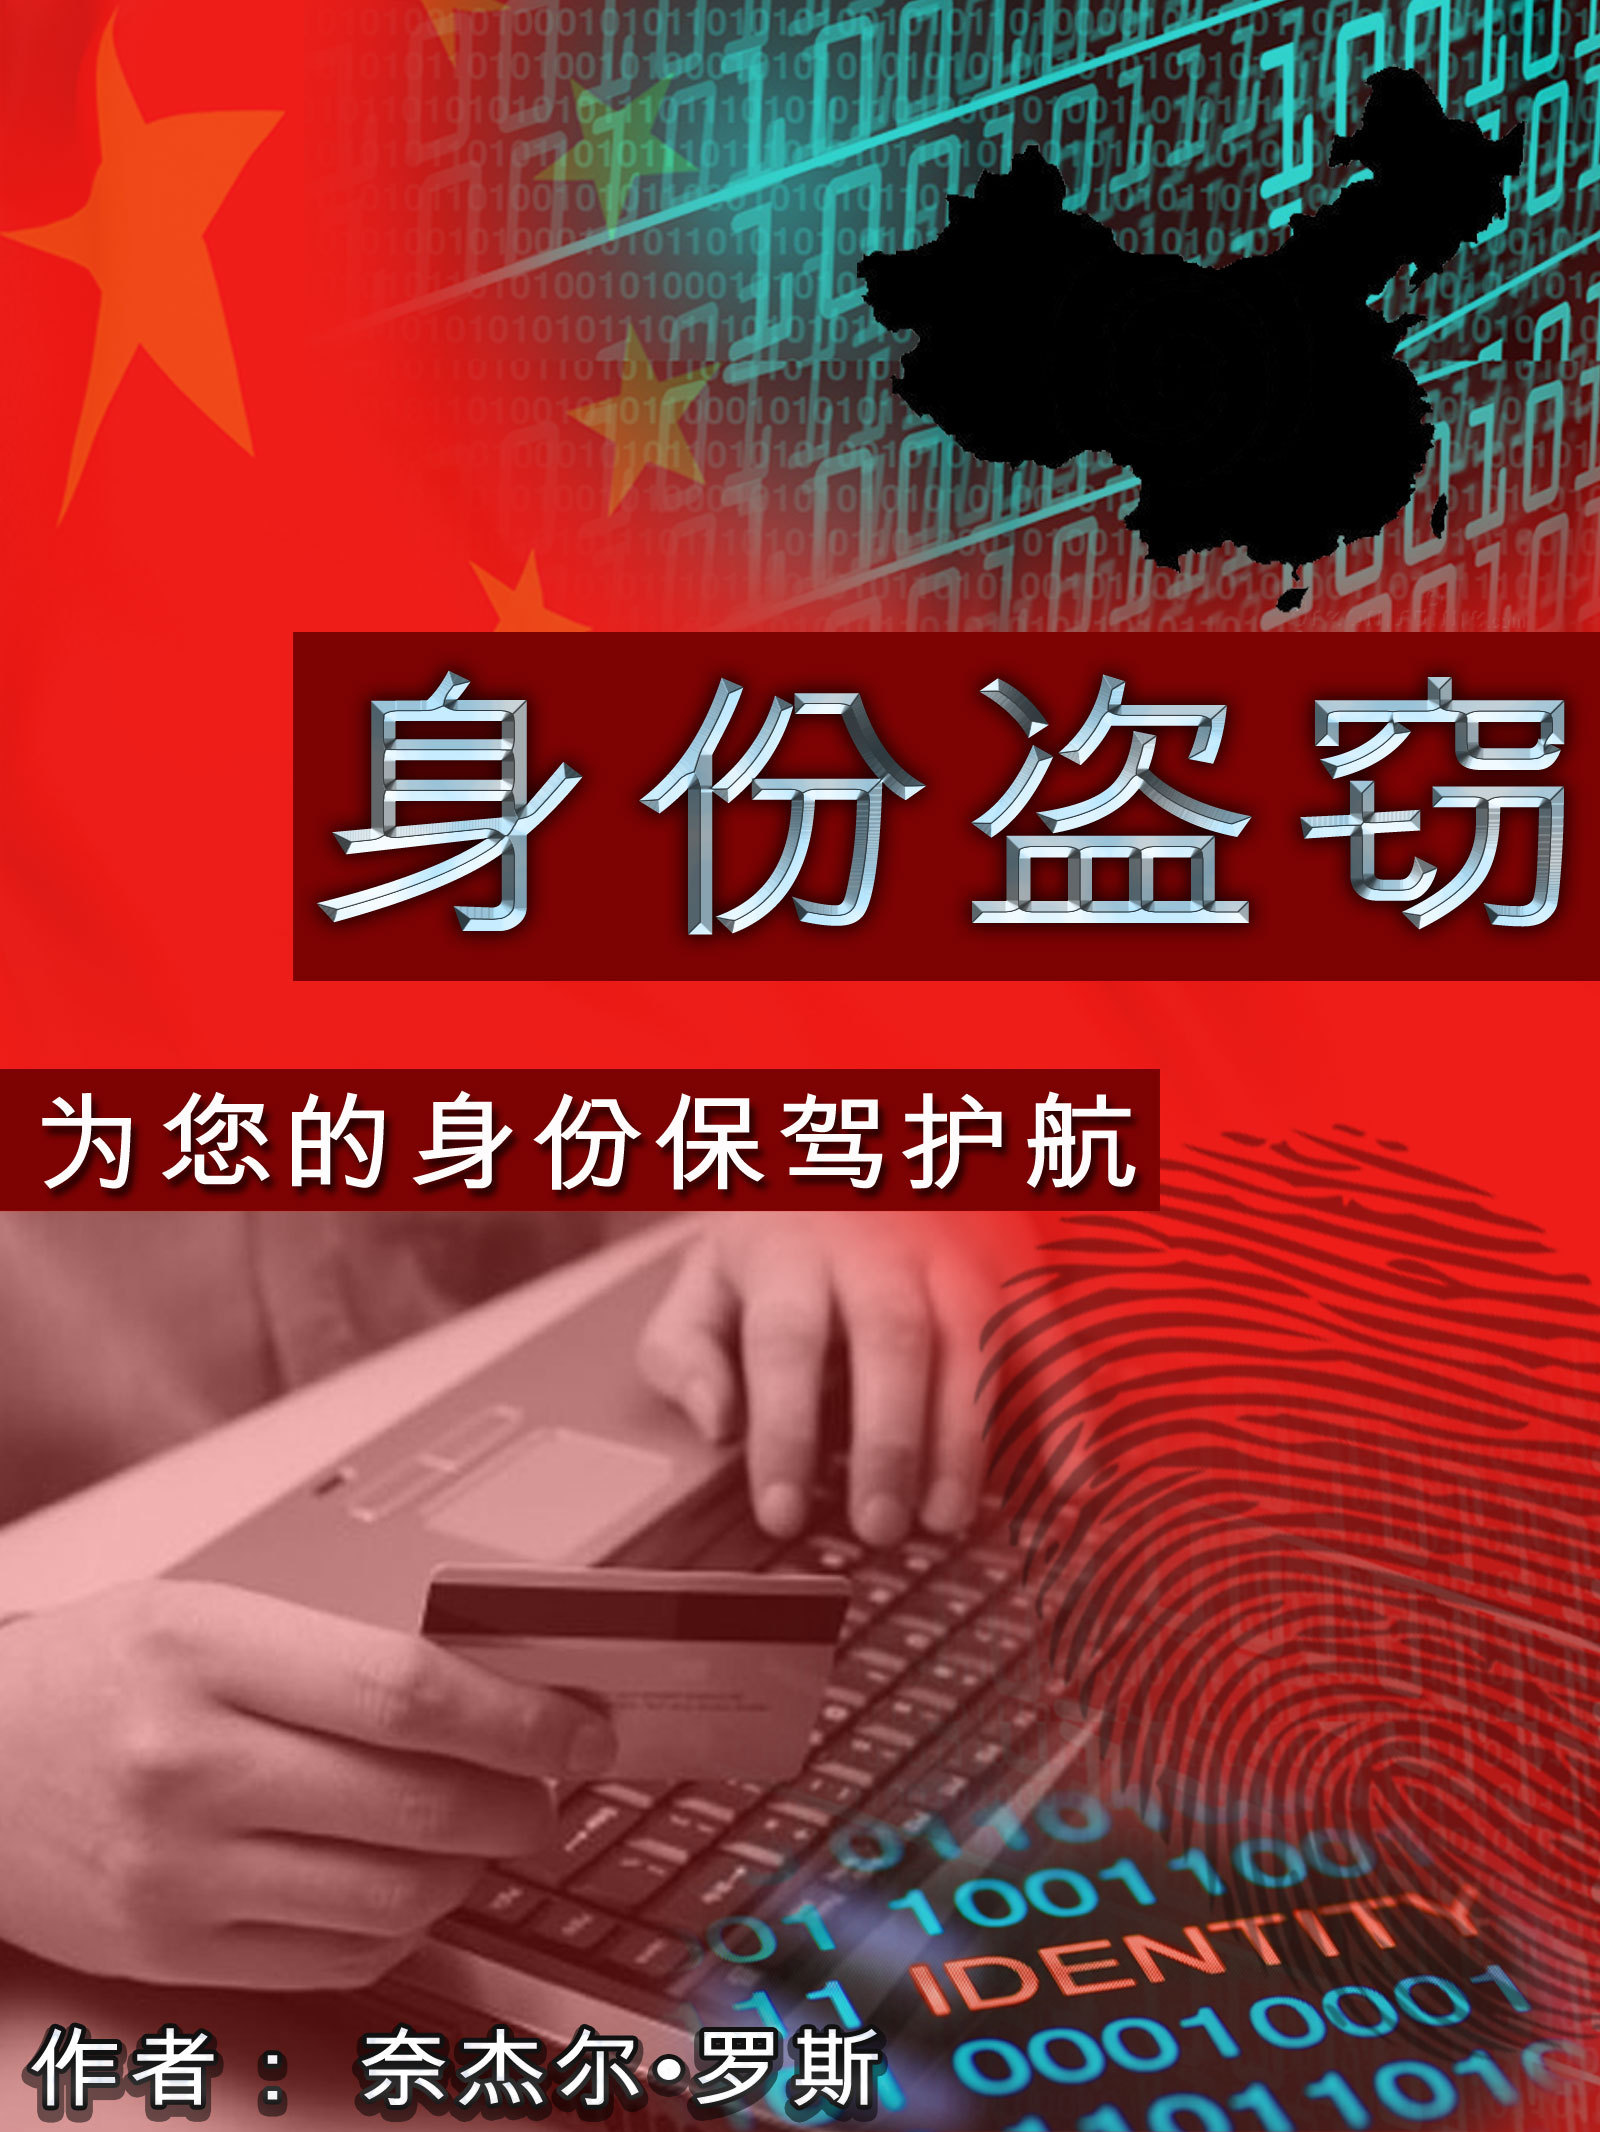 身份盗窃   防止受骗及应对方案 (ID Theft Scams and Solutions) By: Nigel Ross